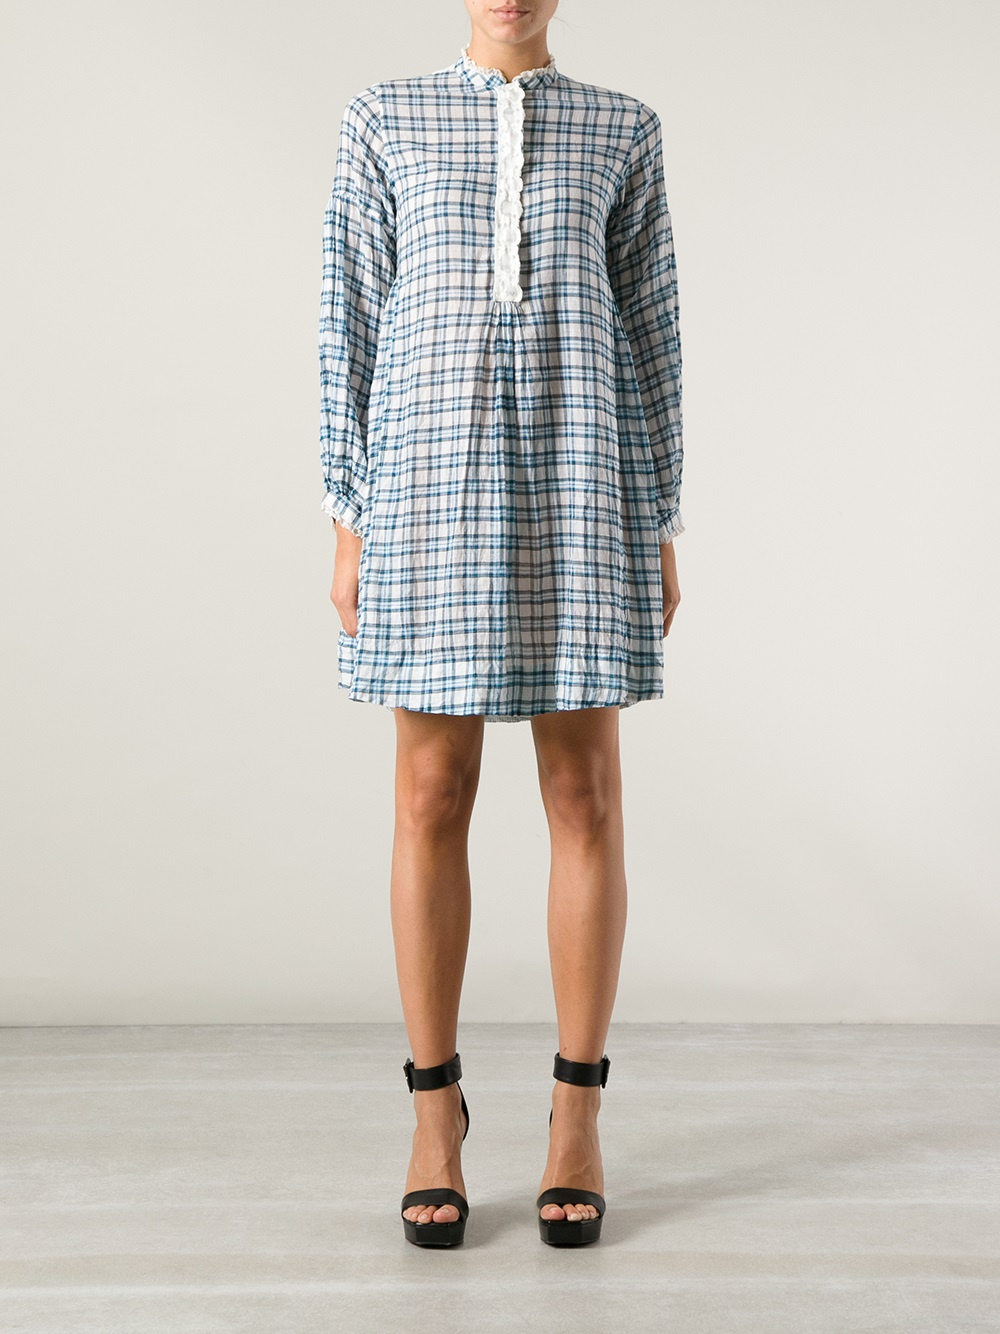 Lyst P Ro Checked Shirt Dress In Blue